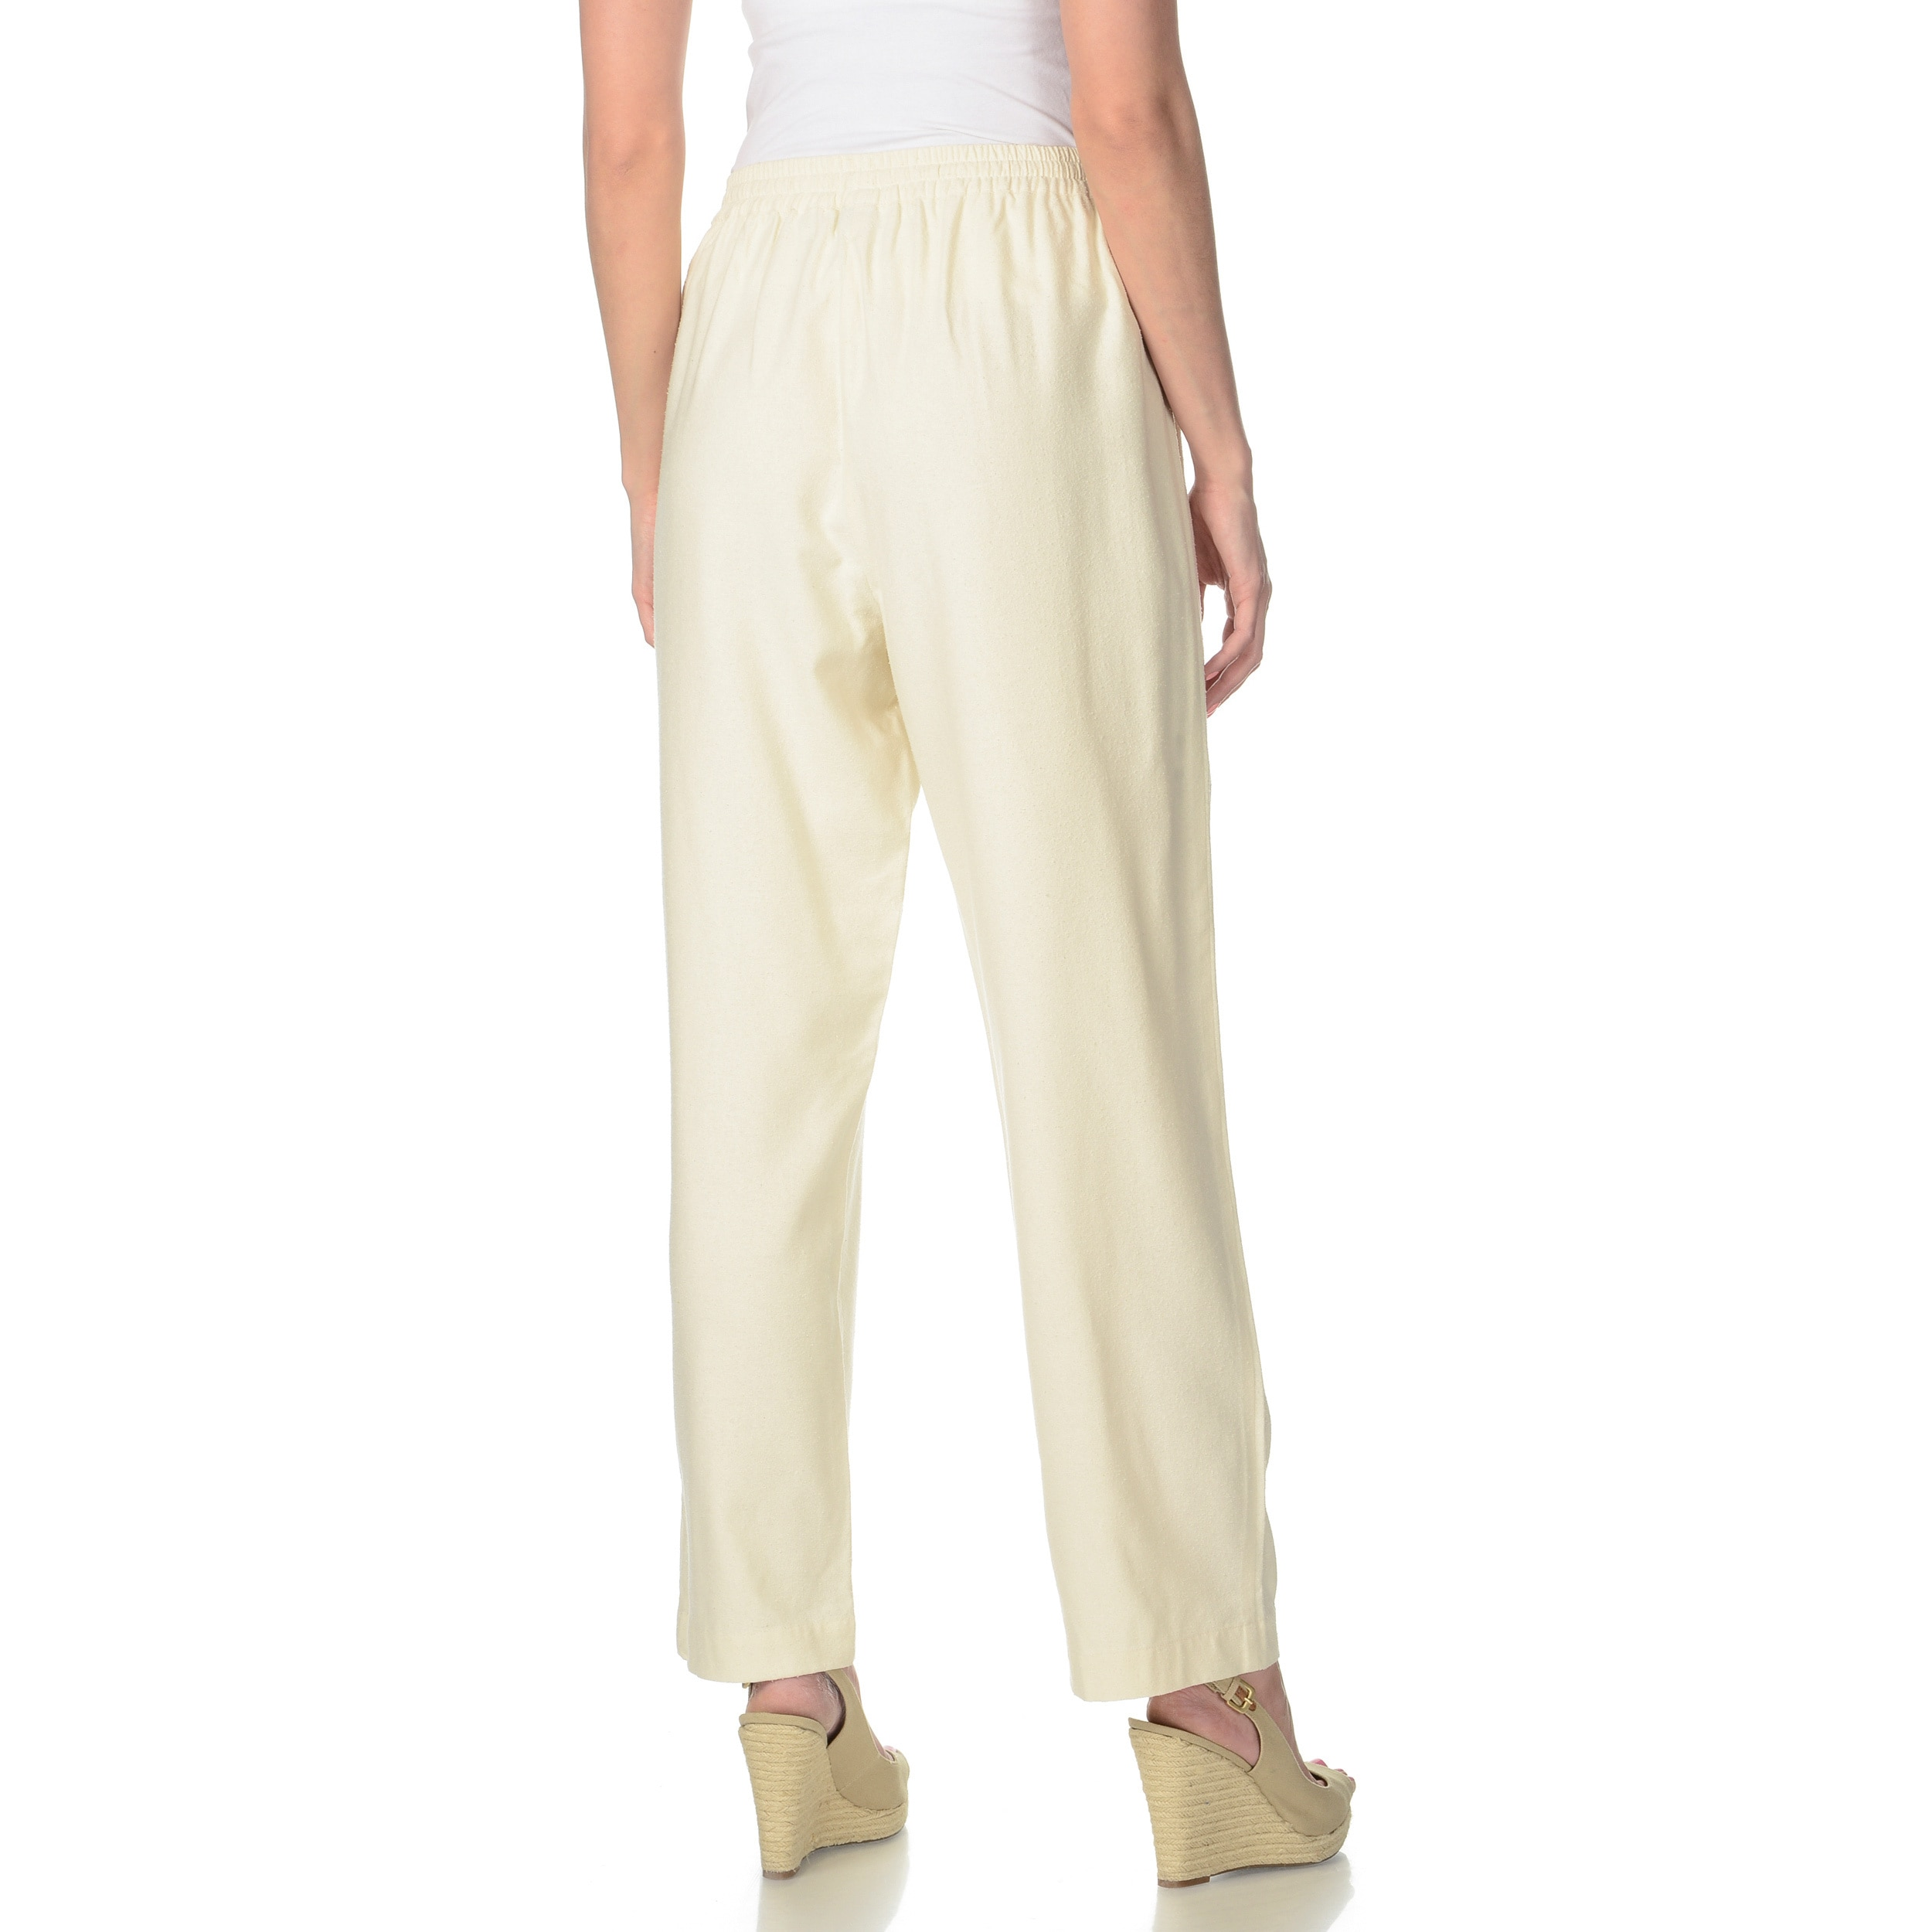 8d3babce196 Shop La Cera Women s Silk Wide-leg Pants - Free Shipping On Orders Over  45  - Overstock - 9051193